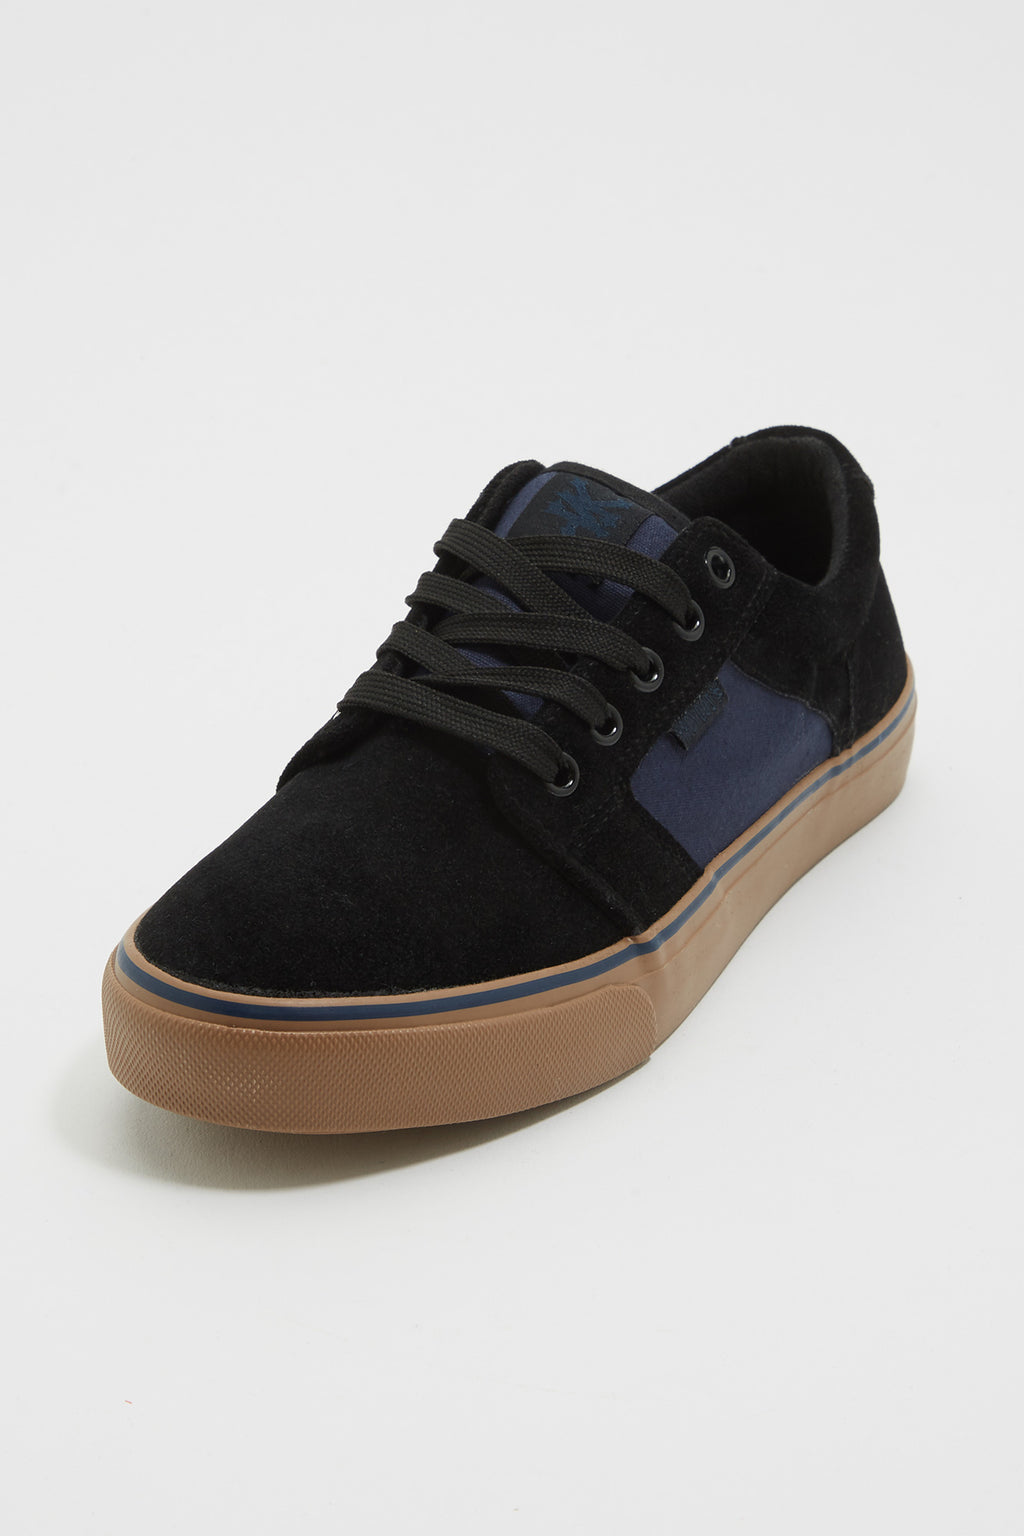 cf38fcdab08fb West49 | Mens & Boys Clothing, Skateboards, Shoes and Accessories